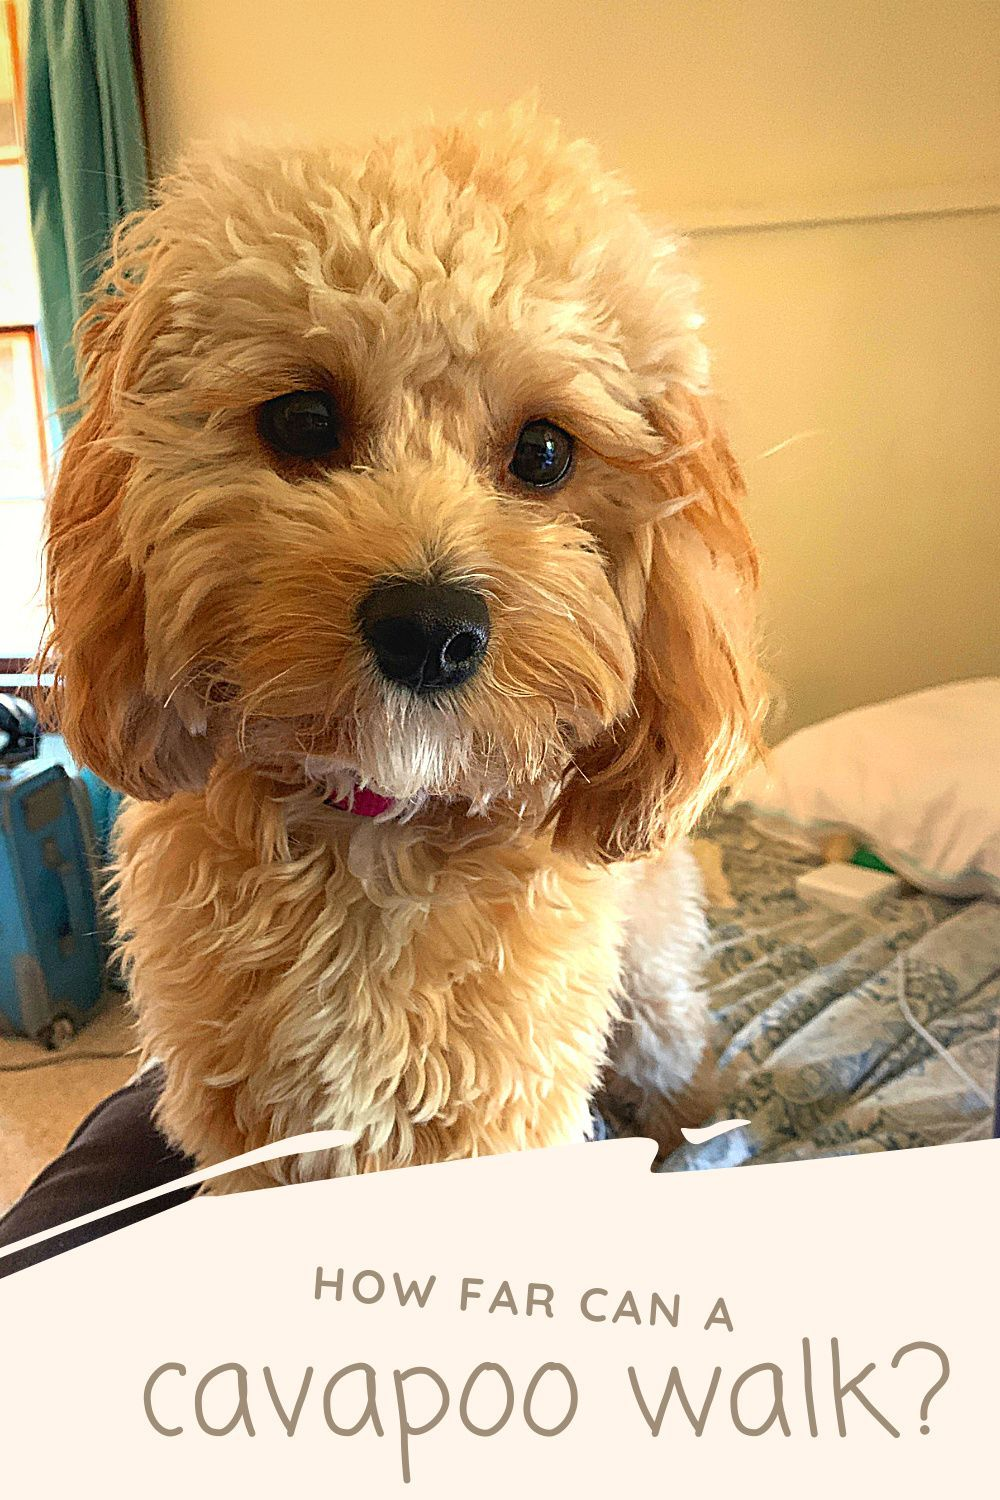 How Far Can A Cavapoo Walk Puppy Age And Maximum Distance Guide Oodle Dogs In 2020 Cavapoo Cavapoo Puppies Puppies